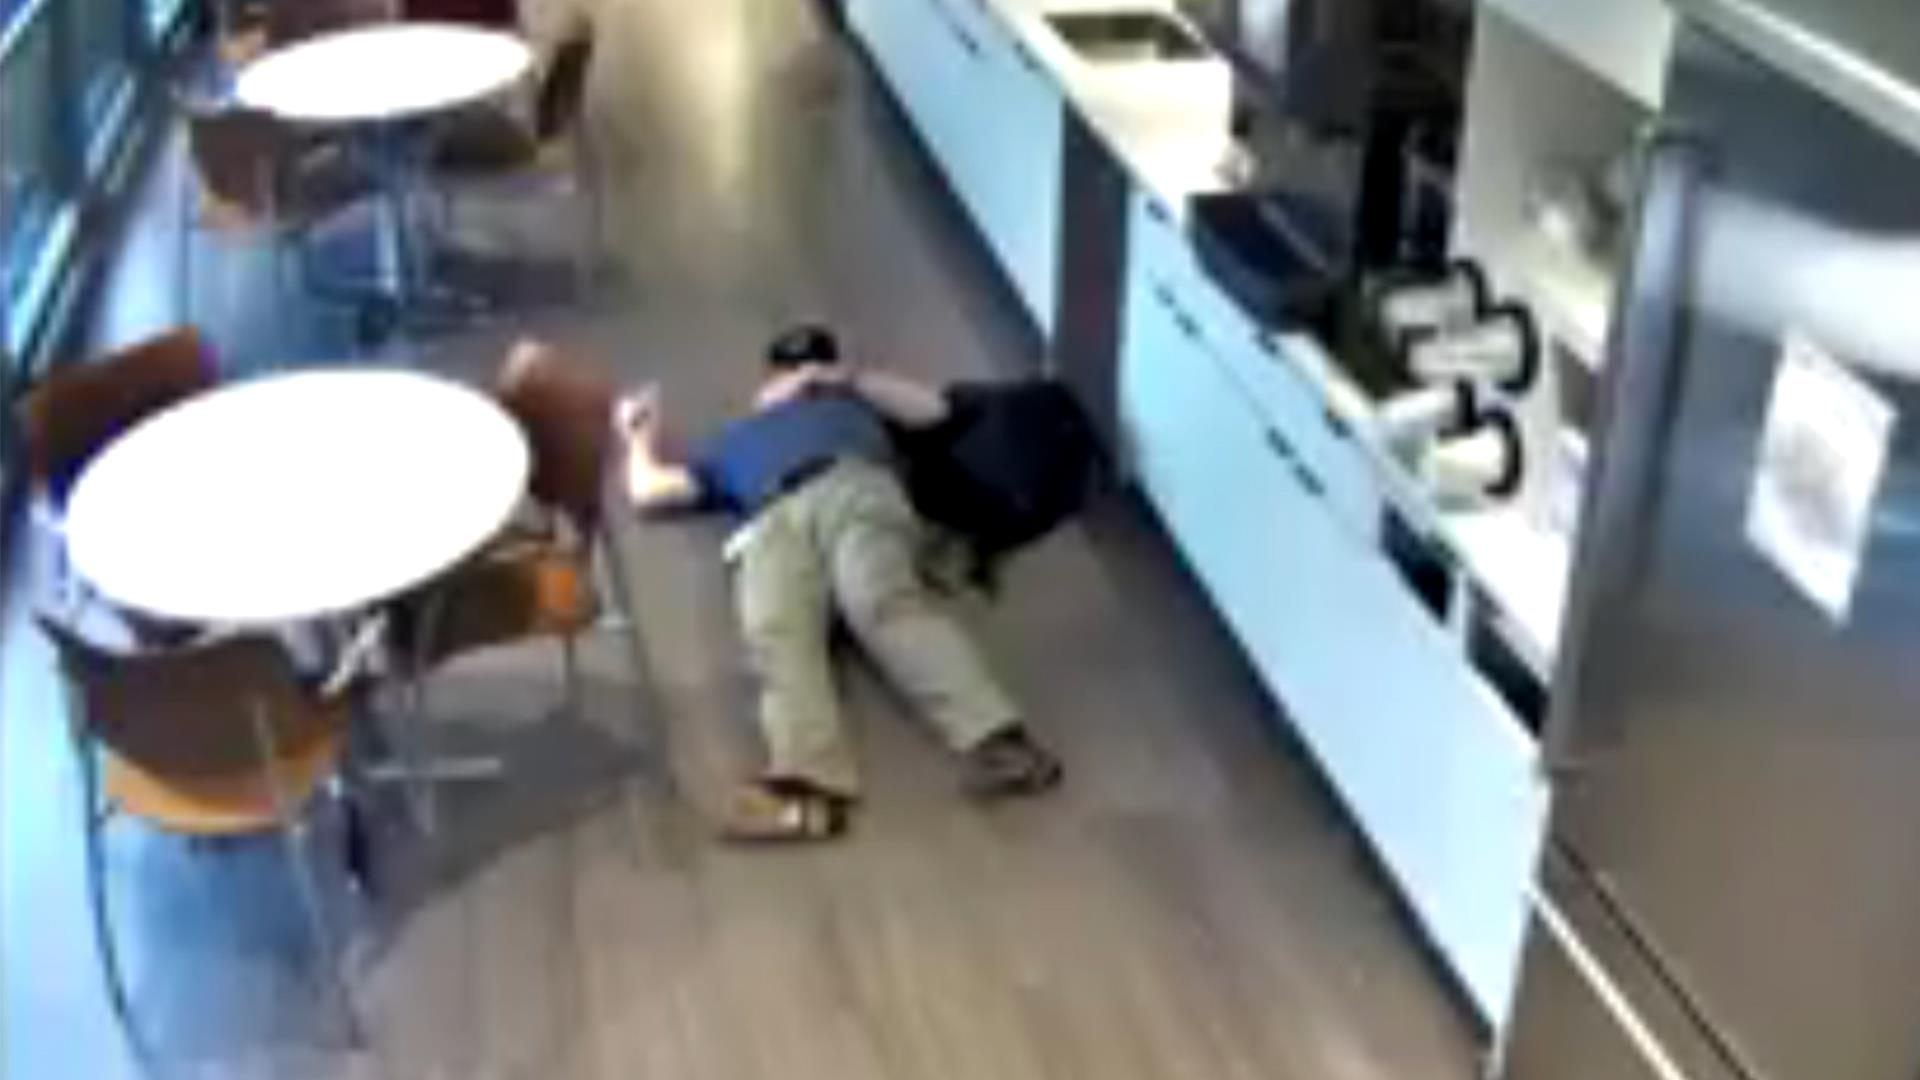 Watch New Jersey man fake workplace fall for fraudulent insurance claim